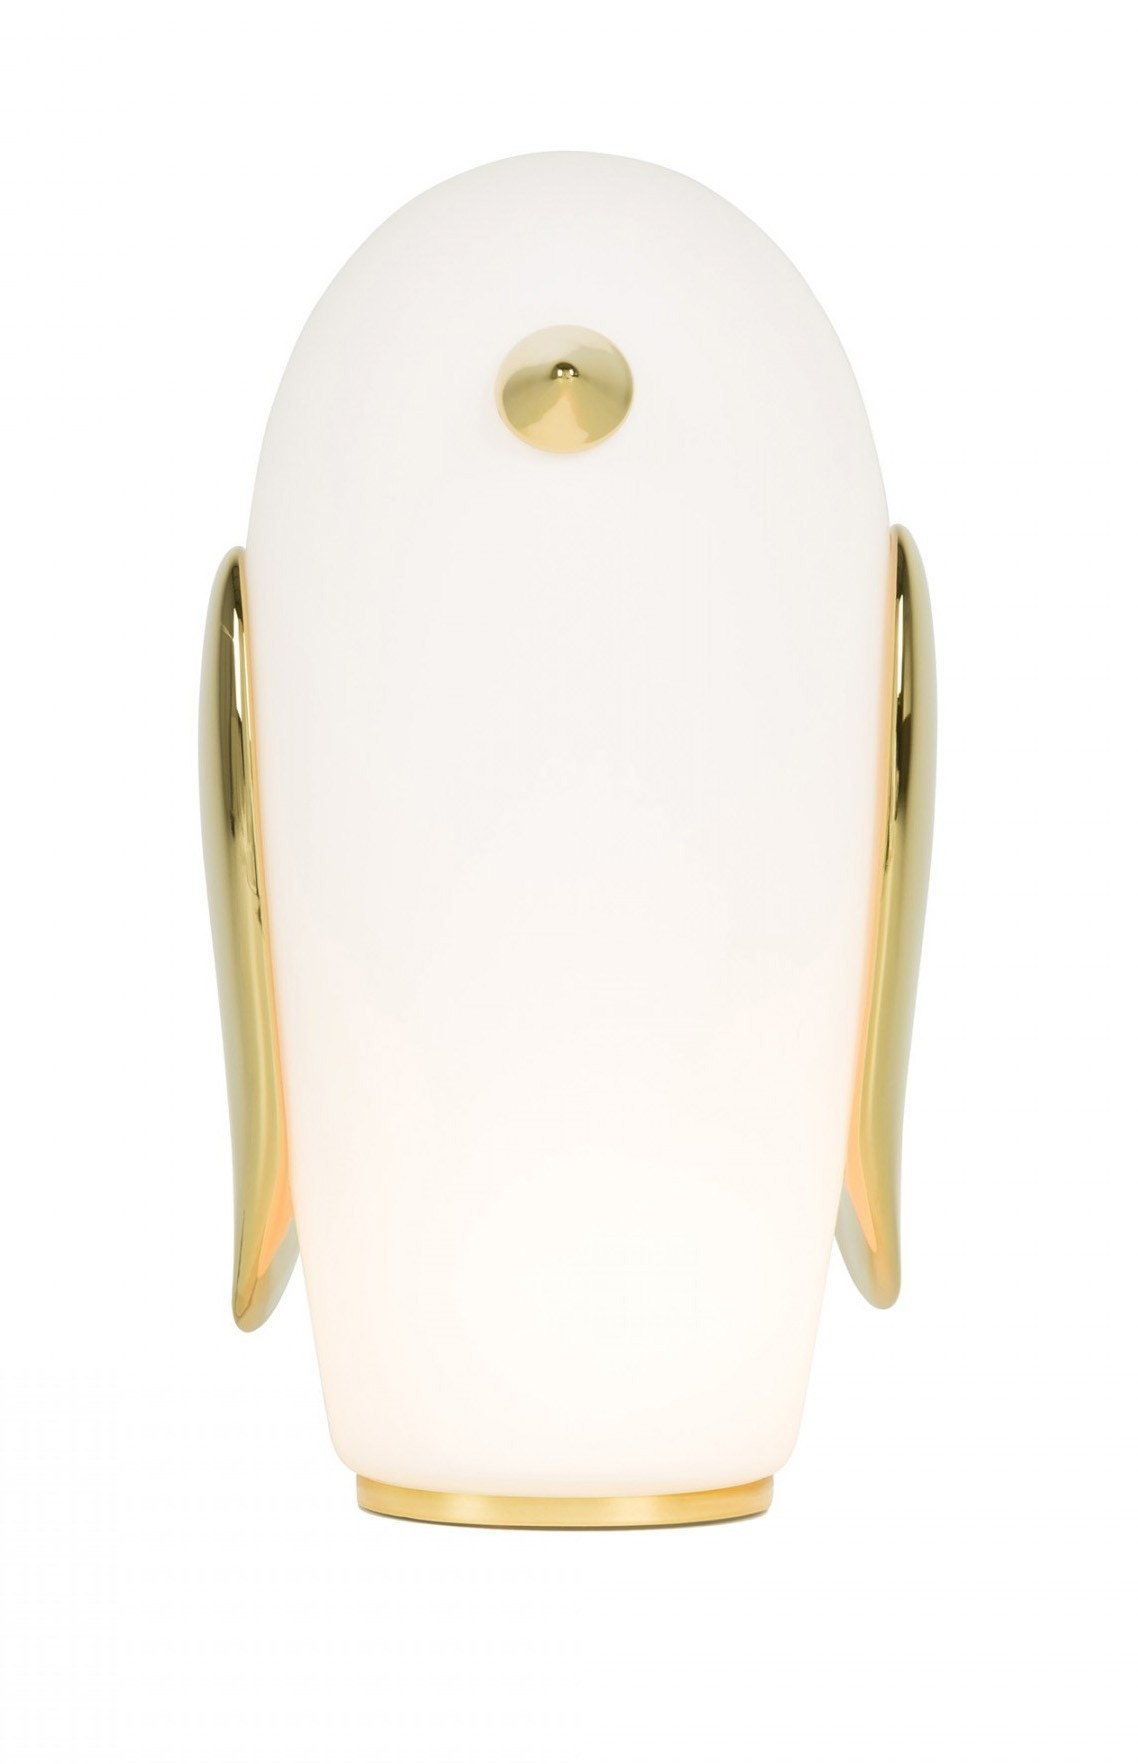 Moooi Noot Noot Penguin Pet Table Lamp